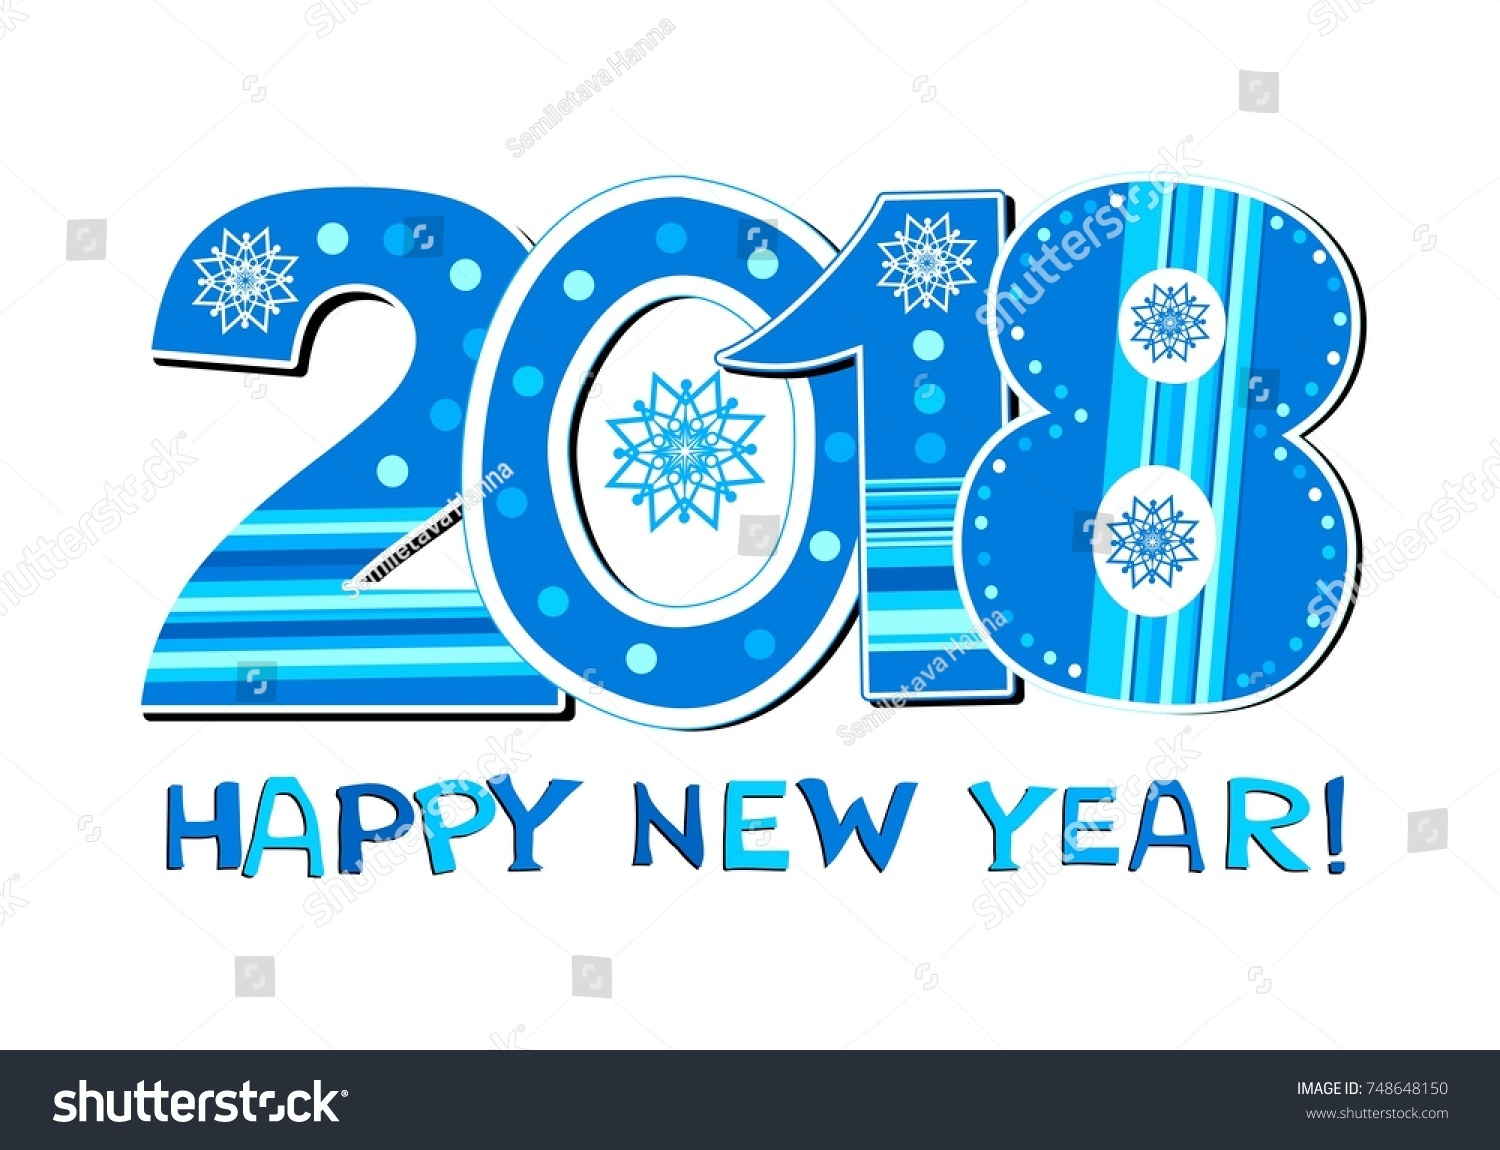 2018 happy new year greeting card or background celebration background with arabic numerals and place